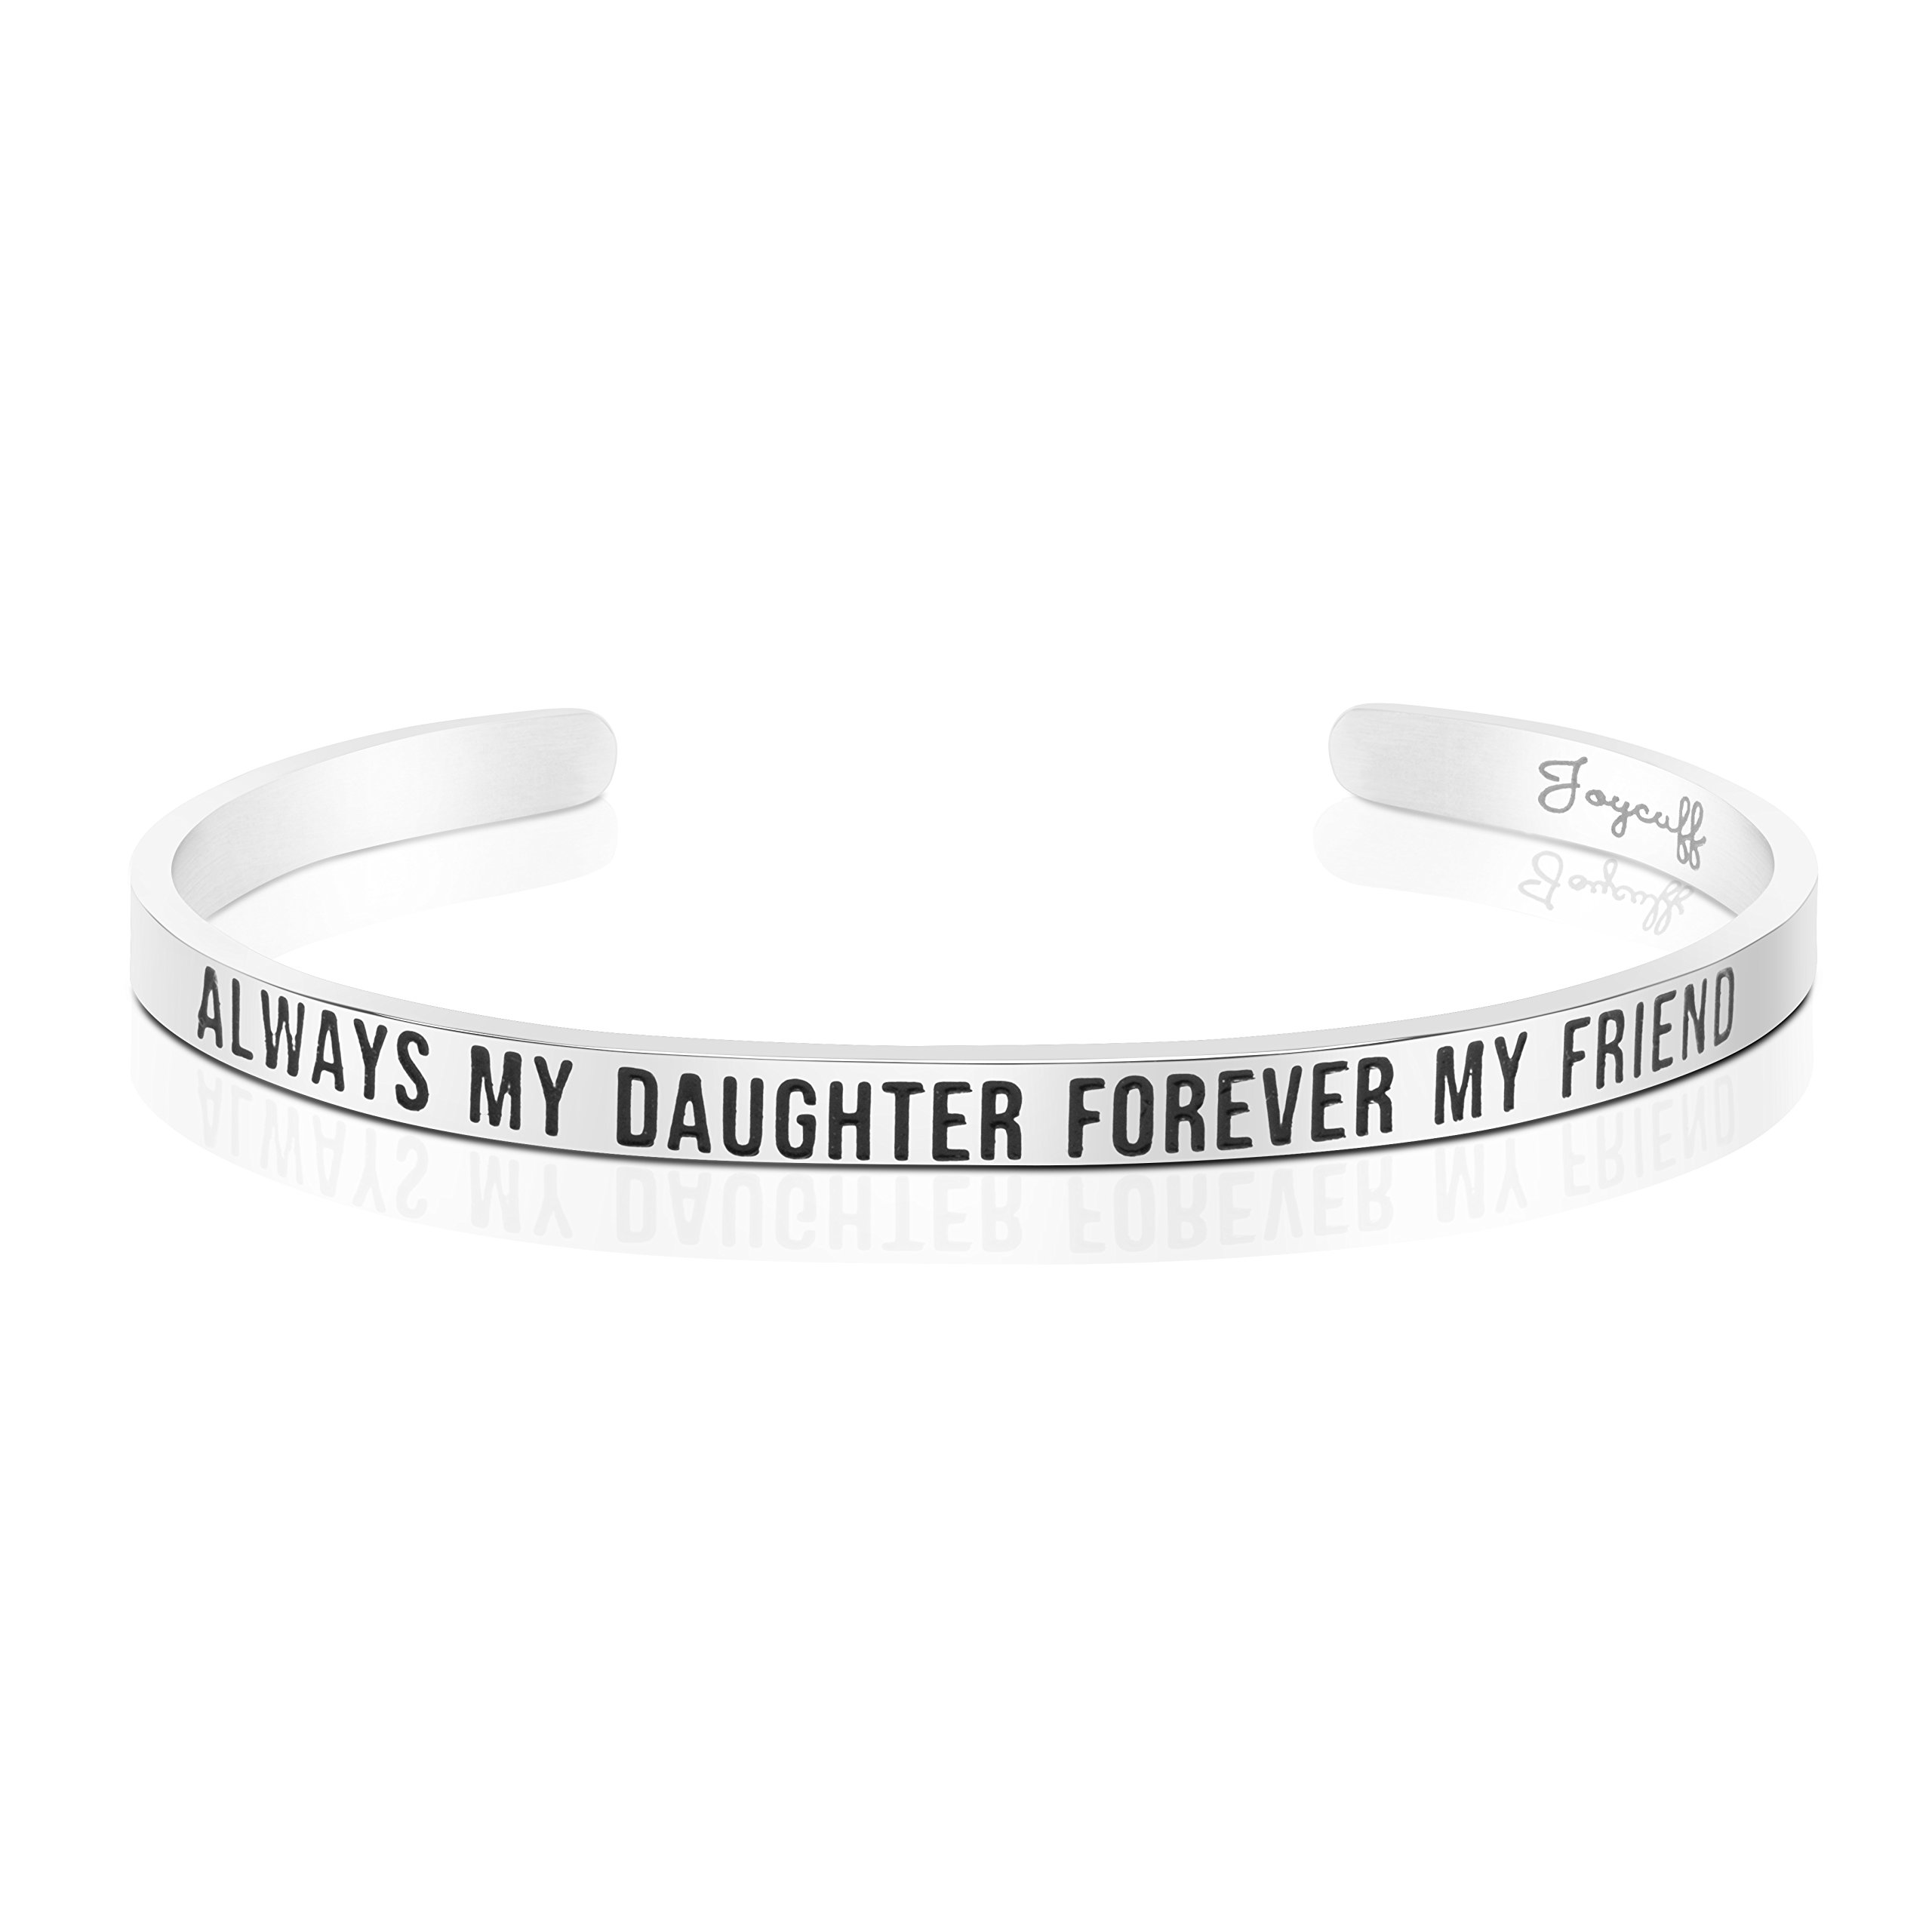 Daughter Bracelet for Women from Mom Birthday Gifts for Her Cuff Bracelet Bangle Engraved Always My Daughter Forever My Friend